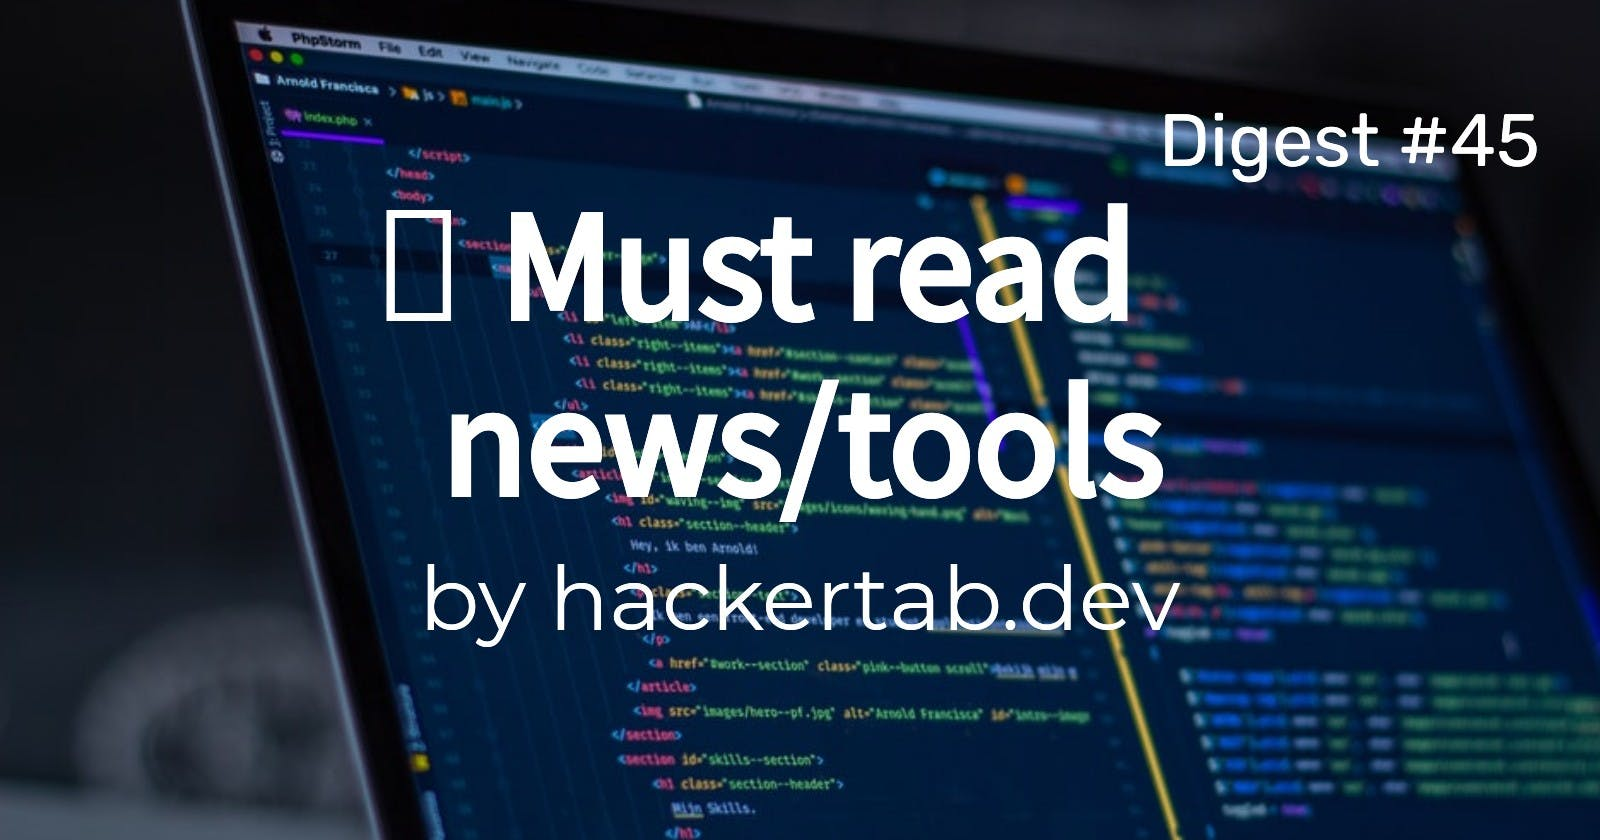 🔥 Trending News, Repos and Products of the day - Digest #45